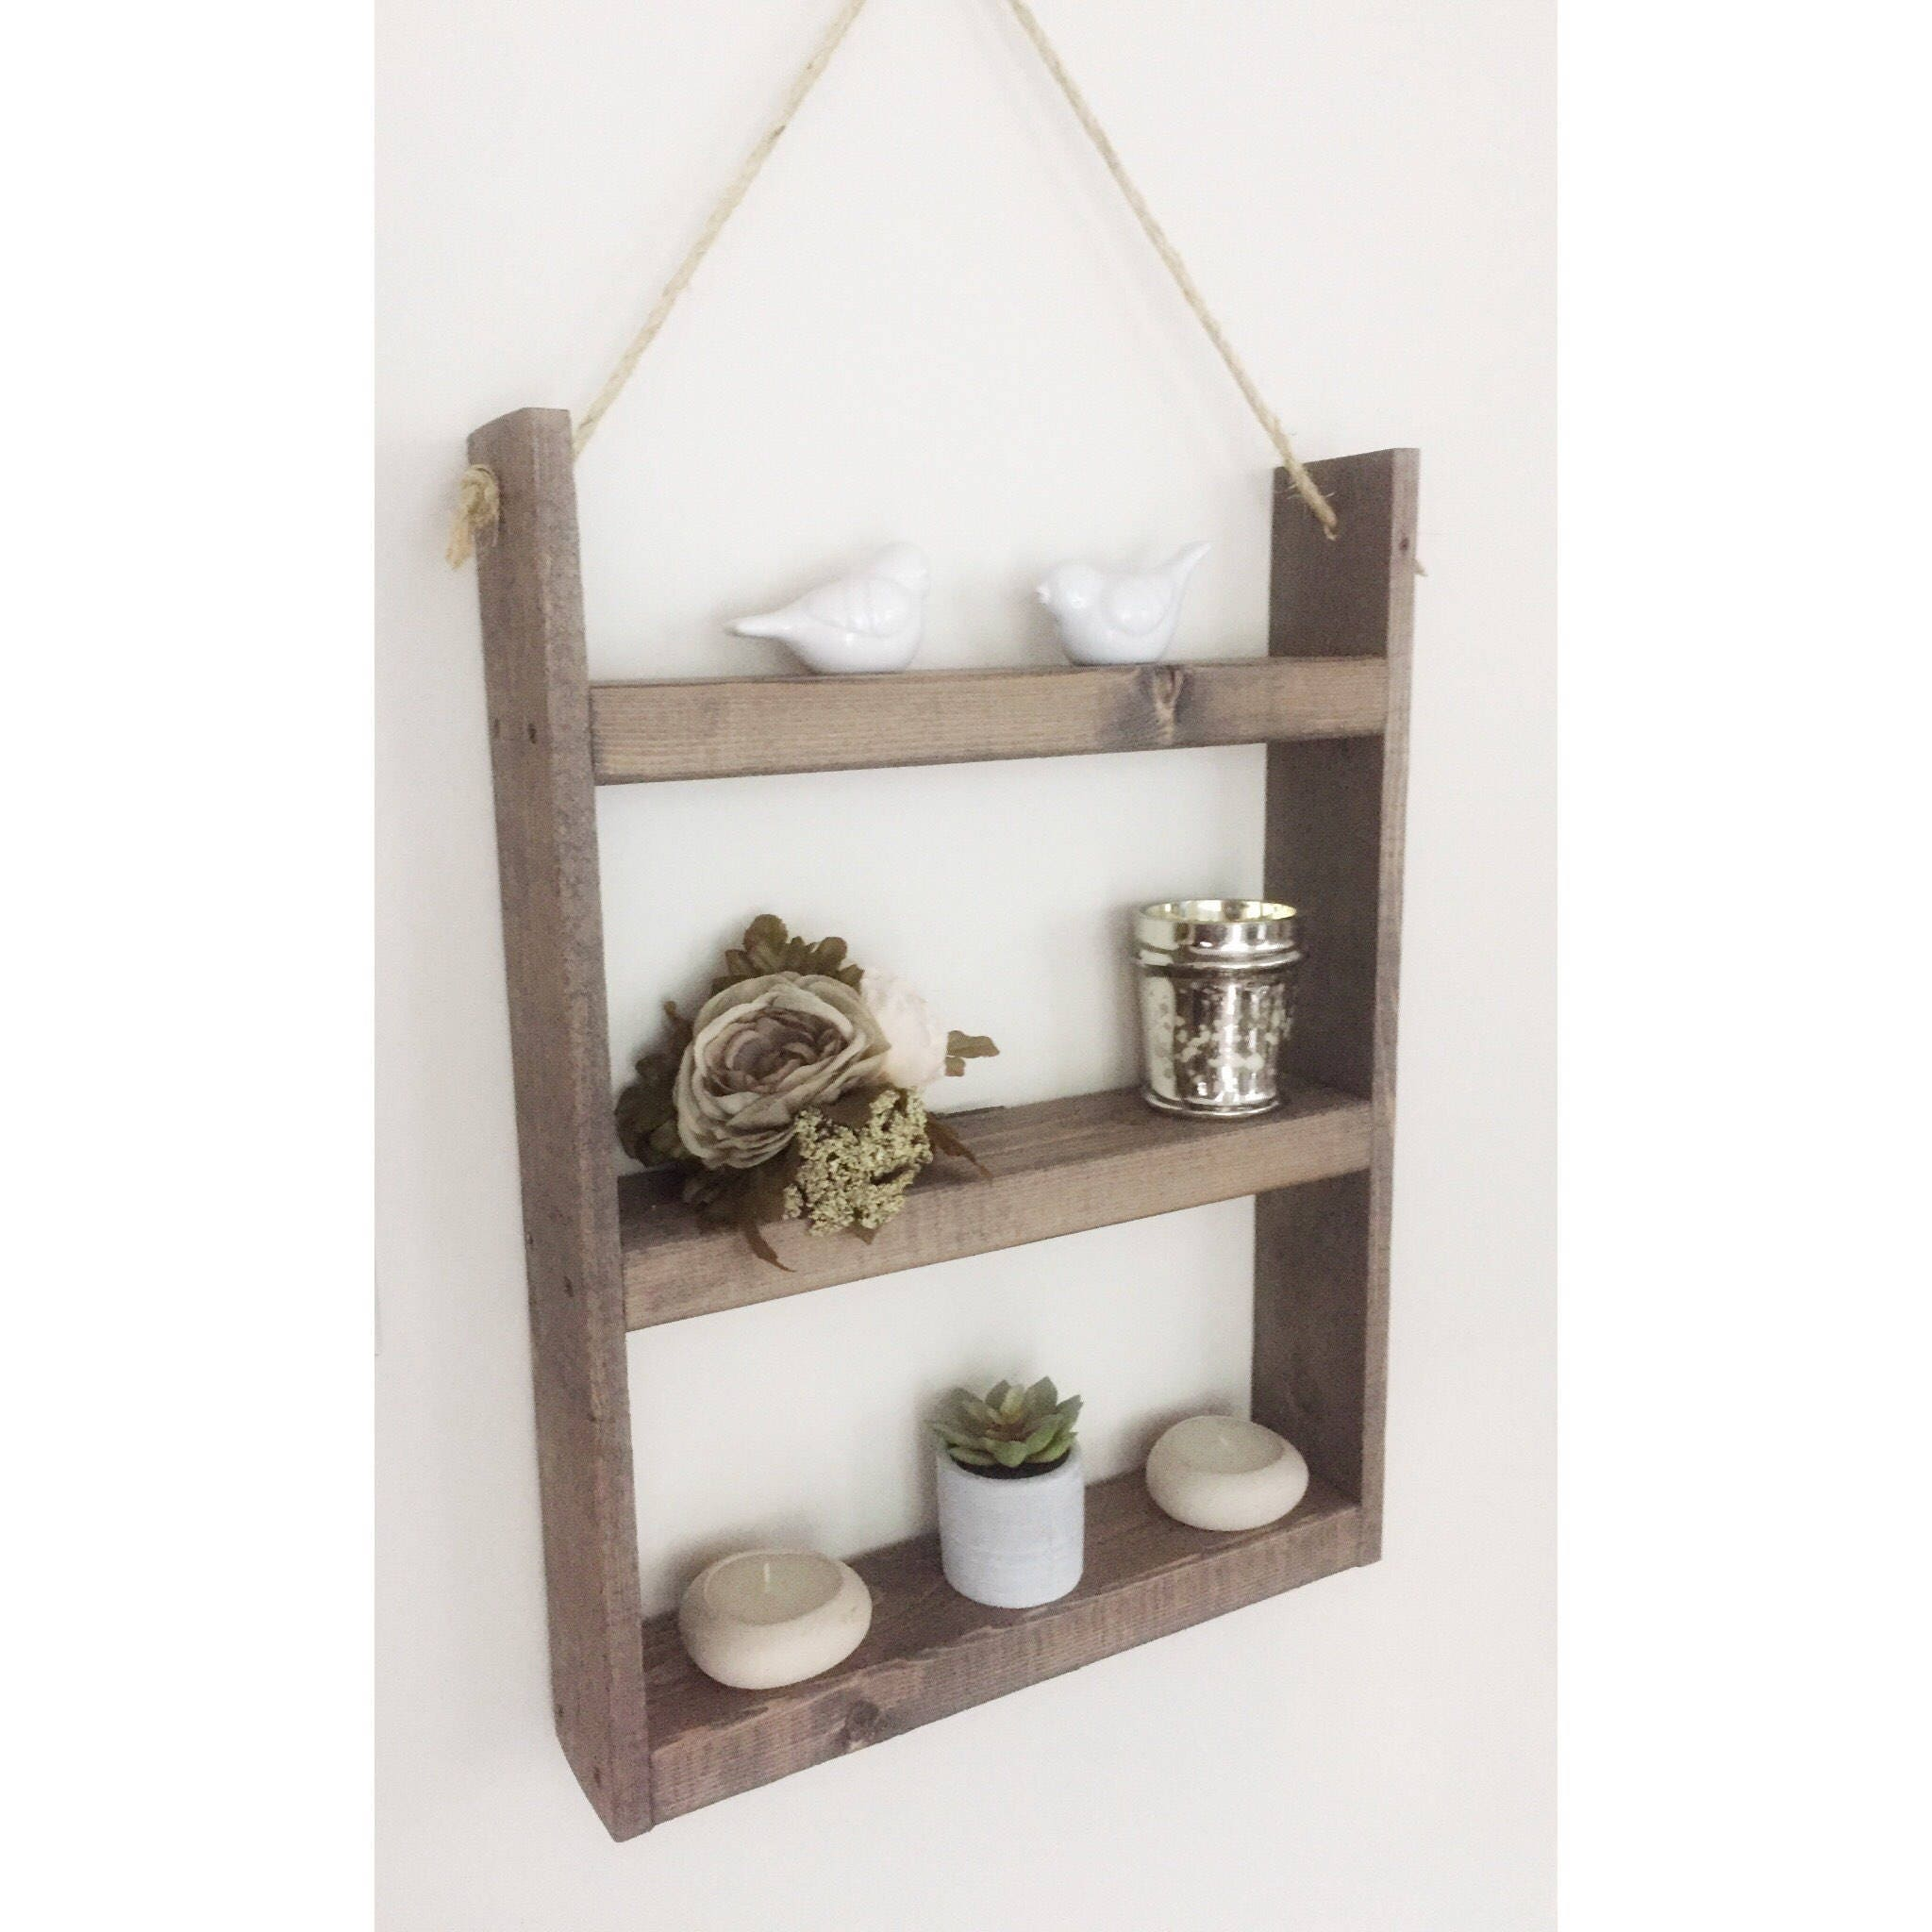 Rope Shelf   Bathroom Shelf   Kitchen Shelf   Spice Rack   Rope Hanging Wood  Shelf   Floating Shelf   Modern Farmhouse Decor